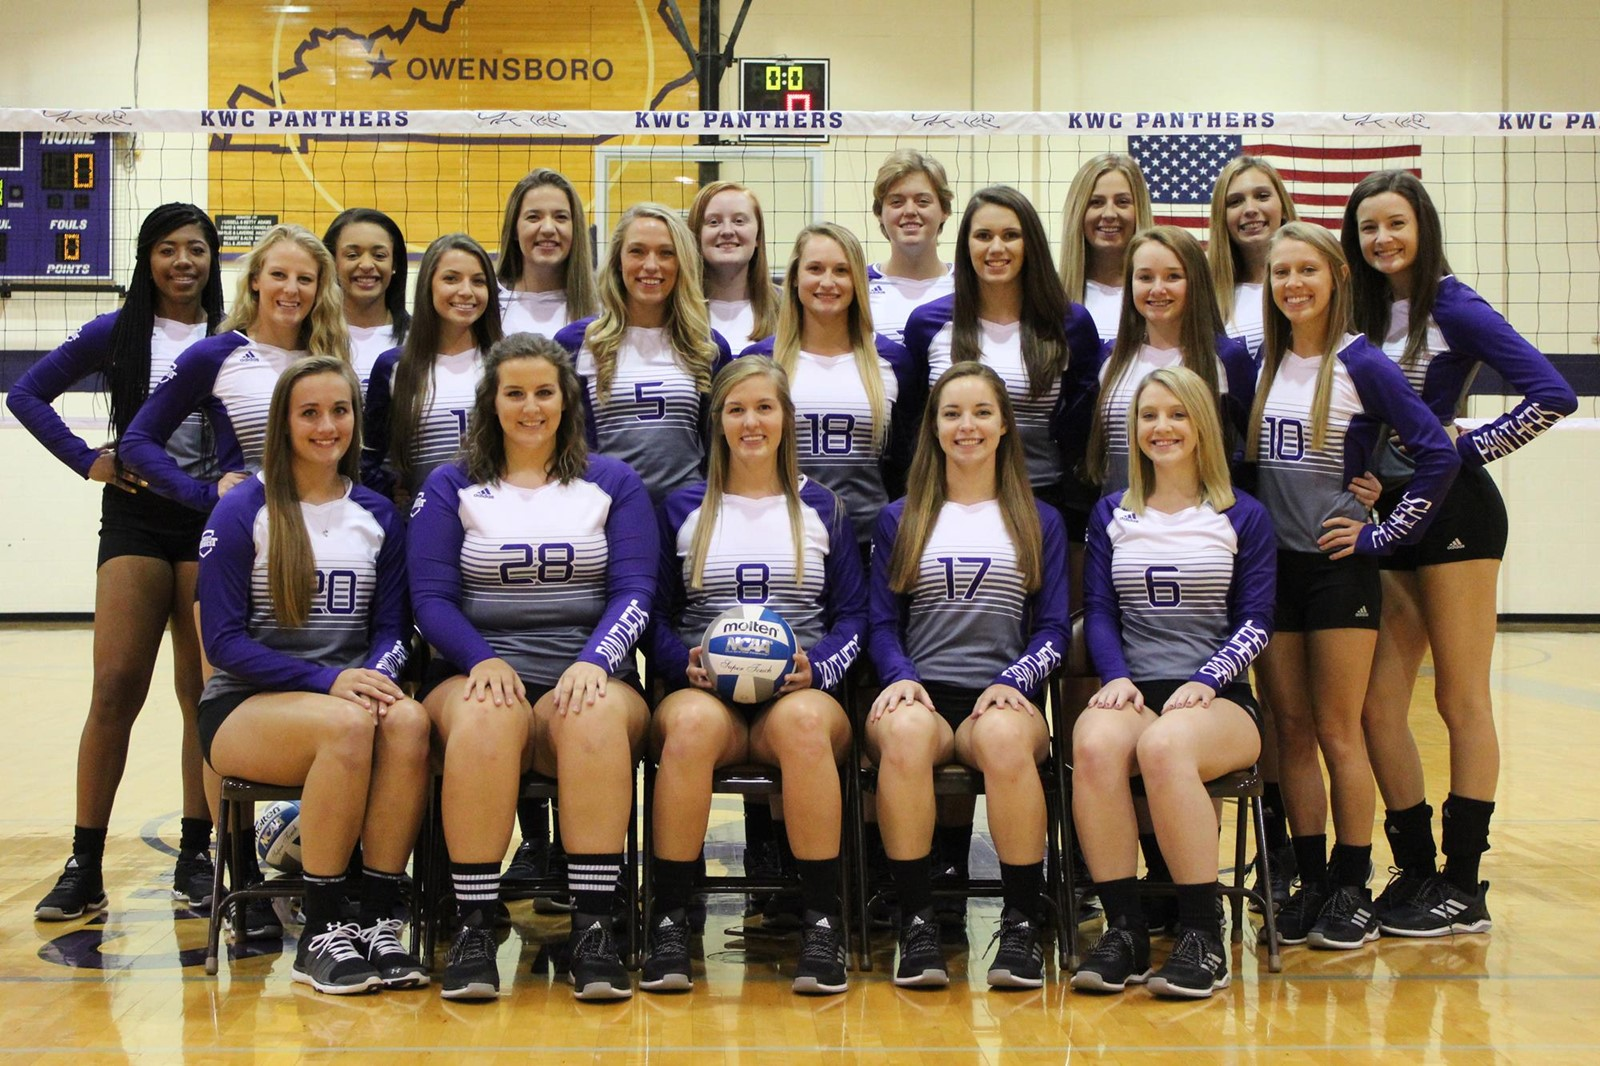 2017 Volleyball Roster Kentucky Wesleyan College Athletics